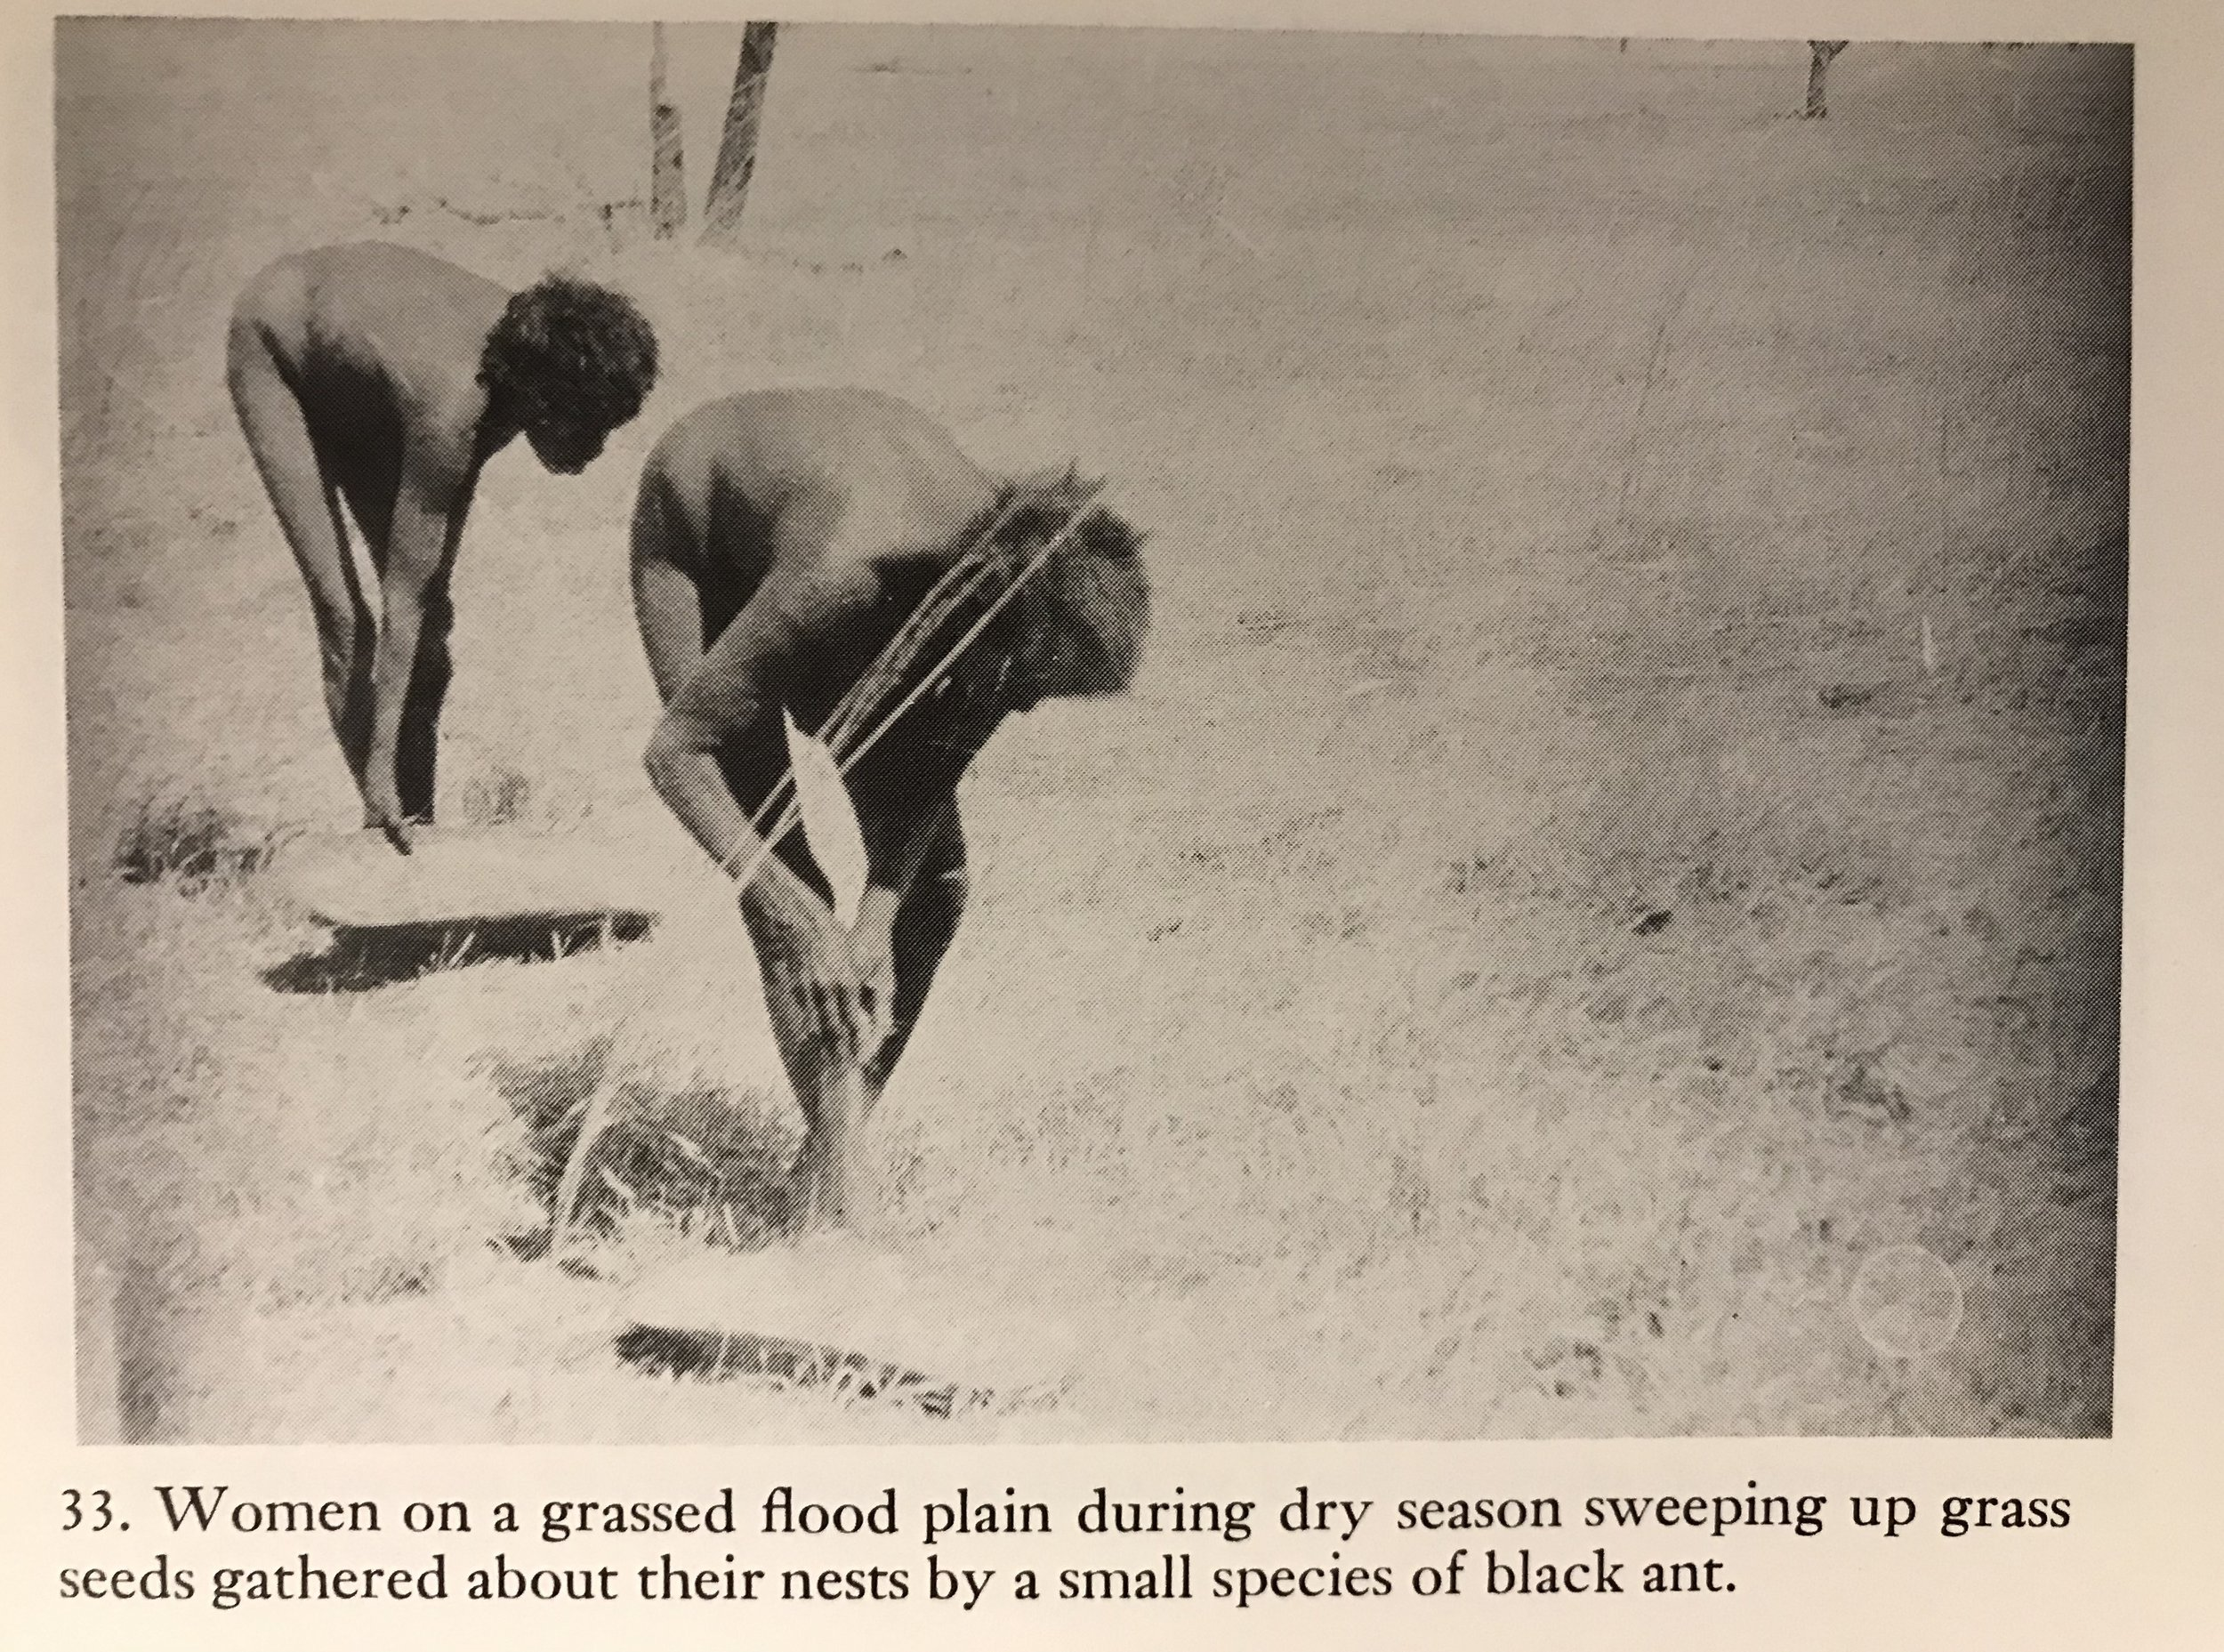 - These photographs are from one of Mr Pascoe's favourite sources, Norman Tindale's, Aboriginal Tribes of Australia, UCP 1974, B&W plates section.In this photograph we see the Aboriginal women, so short of grass seeds that they are reduced to even gleaning the seeds that have been gathered by ants around their nests. No 'vast Aboriginal agricultural cereal estates' to see here Mr Pascoe?